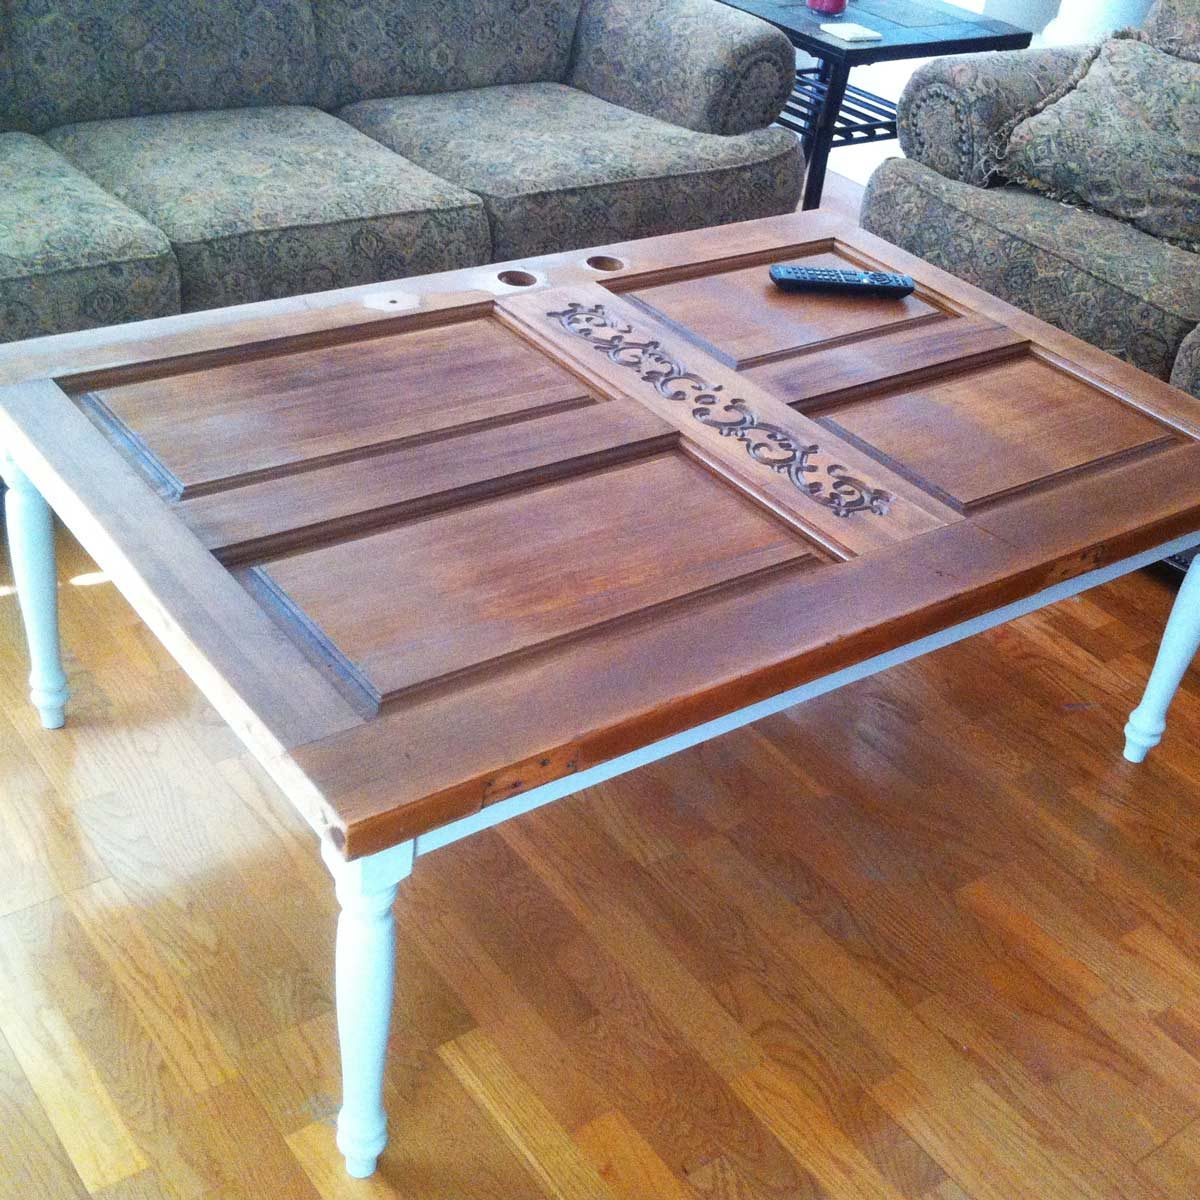 Delicieux Dfh1_doortable Homemade Coffee Table